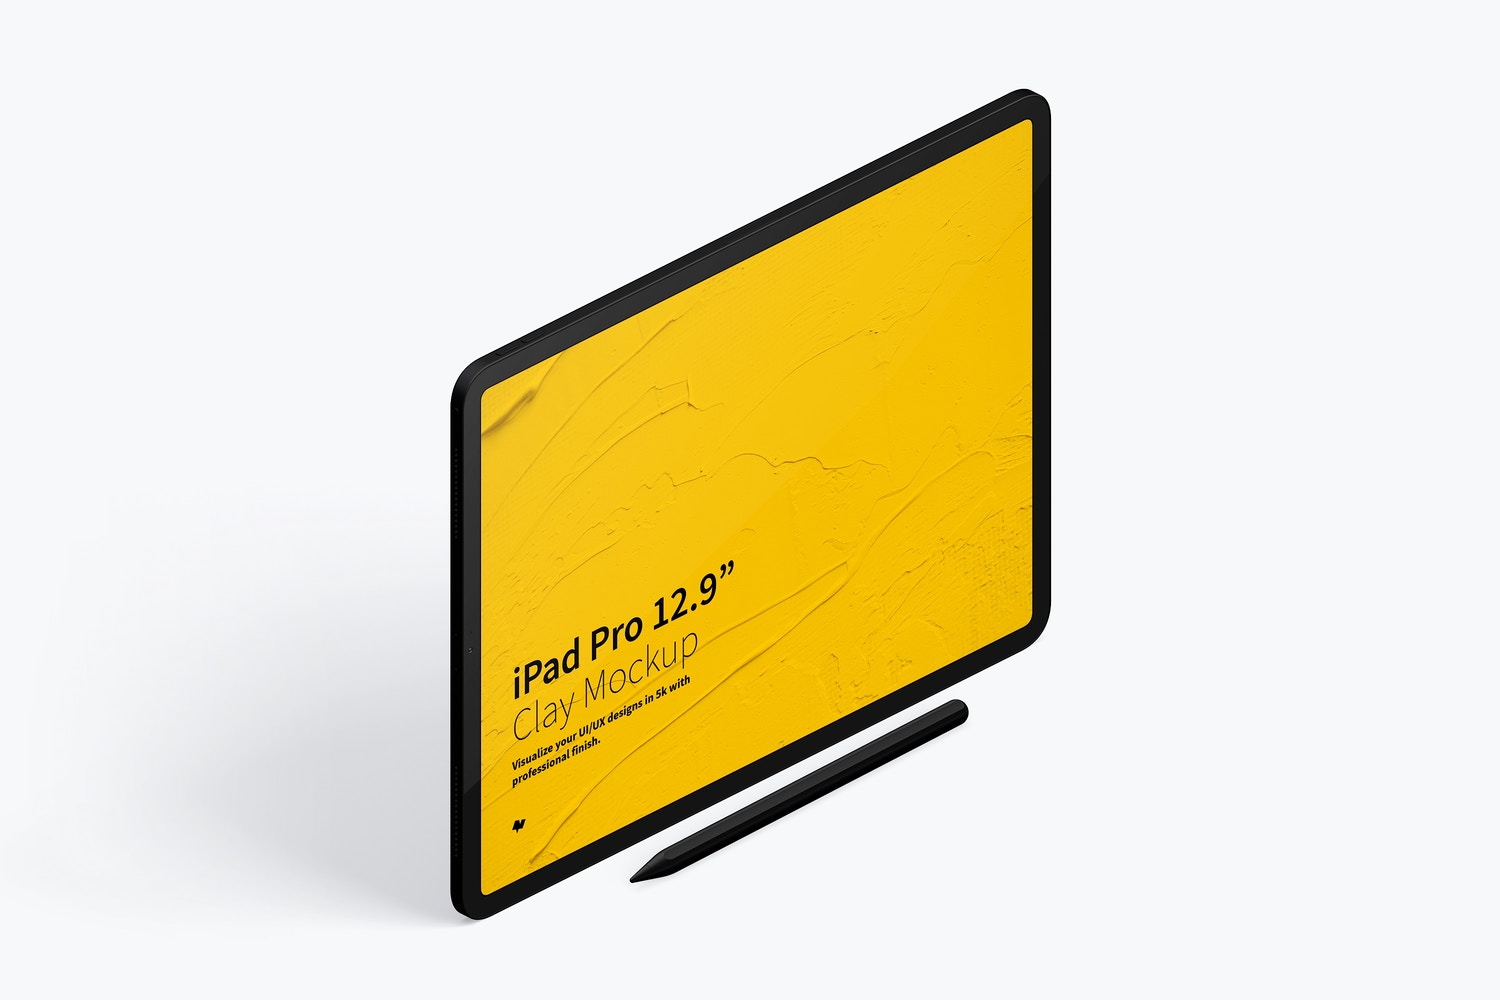 Clay iPad Pro 12.9 Mockup, Isometric Right View 03 (4) by Original Mockups on Original Mockups